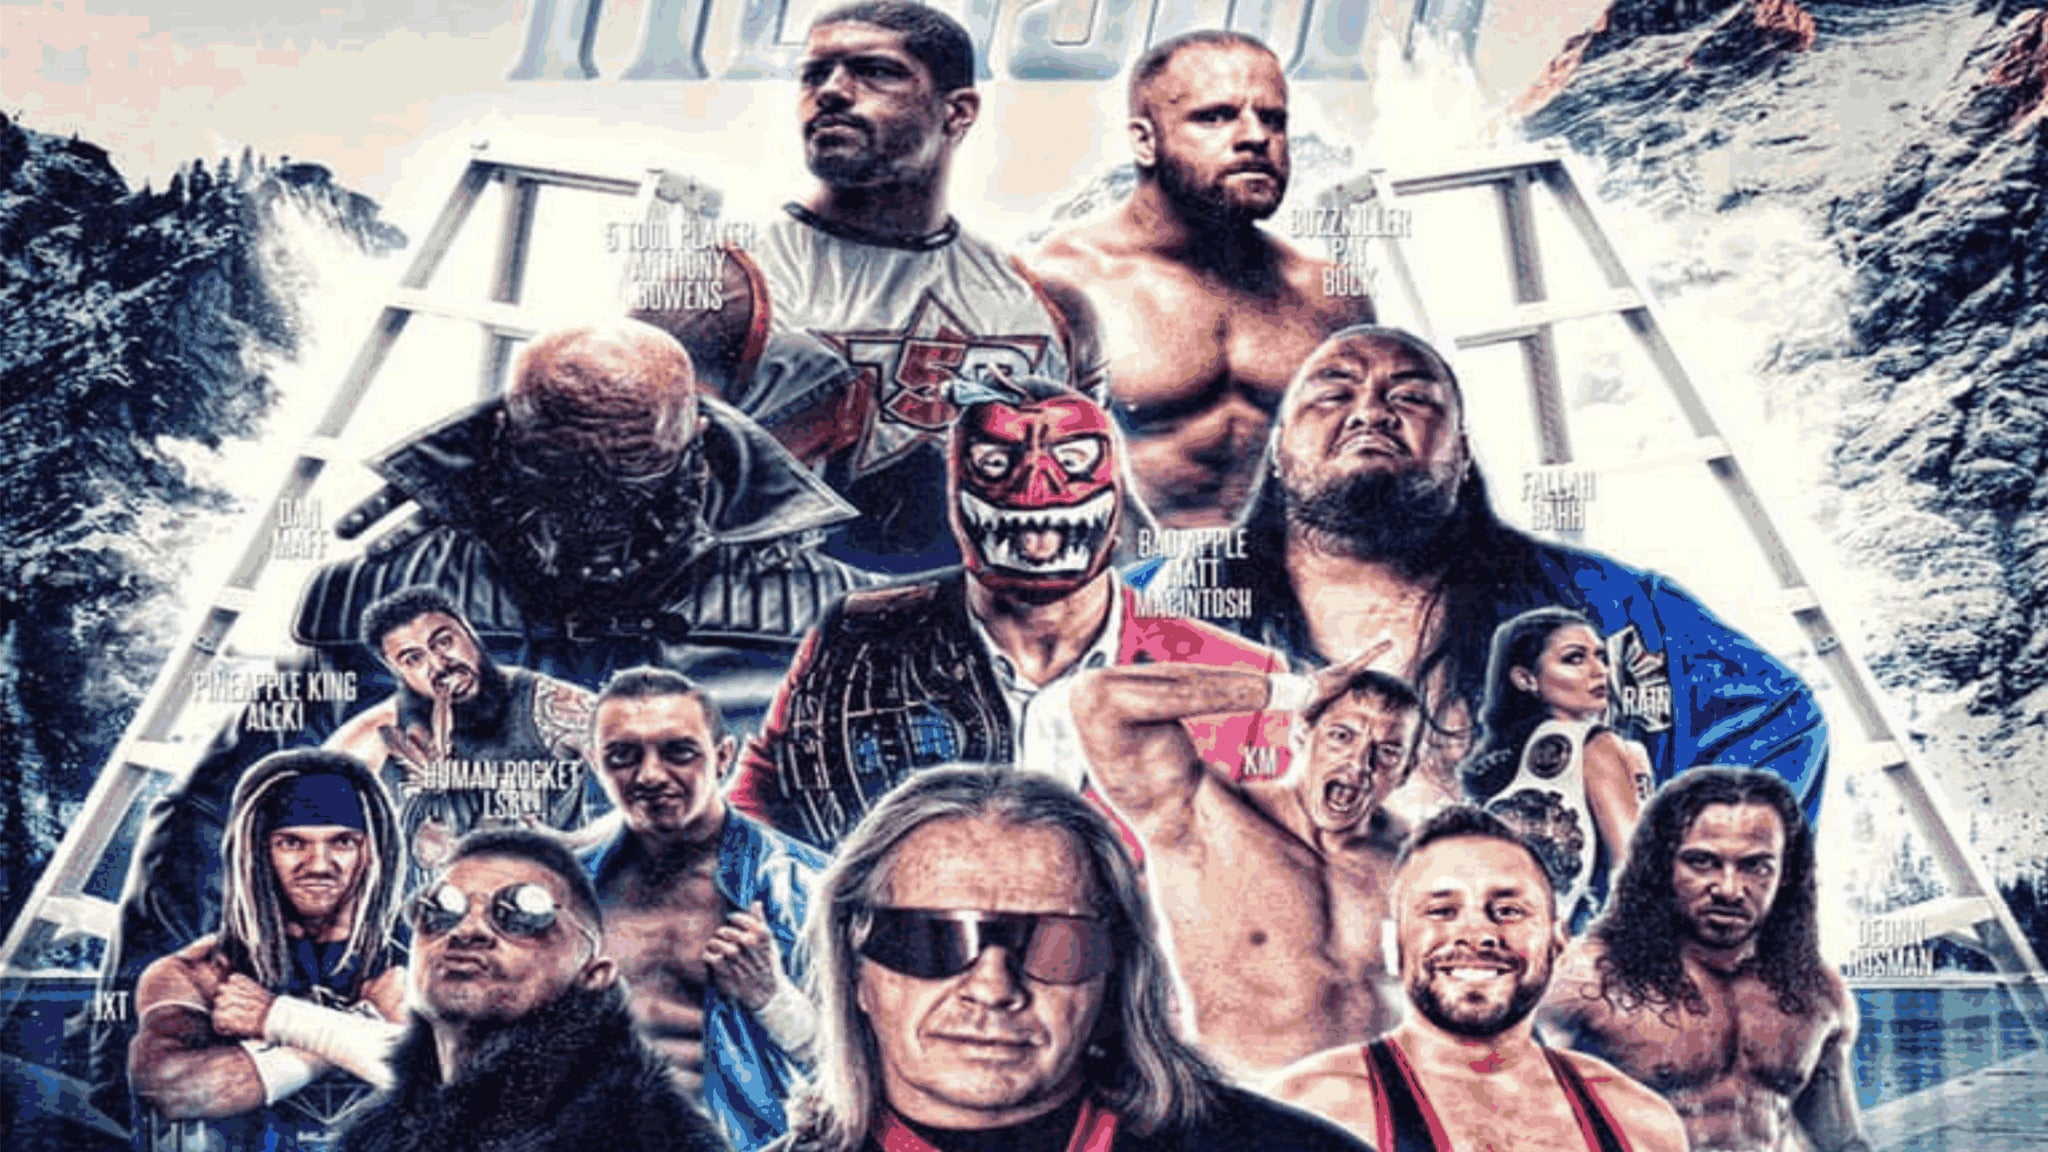 WrestlePro Alaska at George M Sullivan Sports Arena